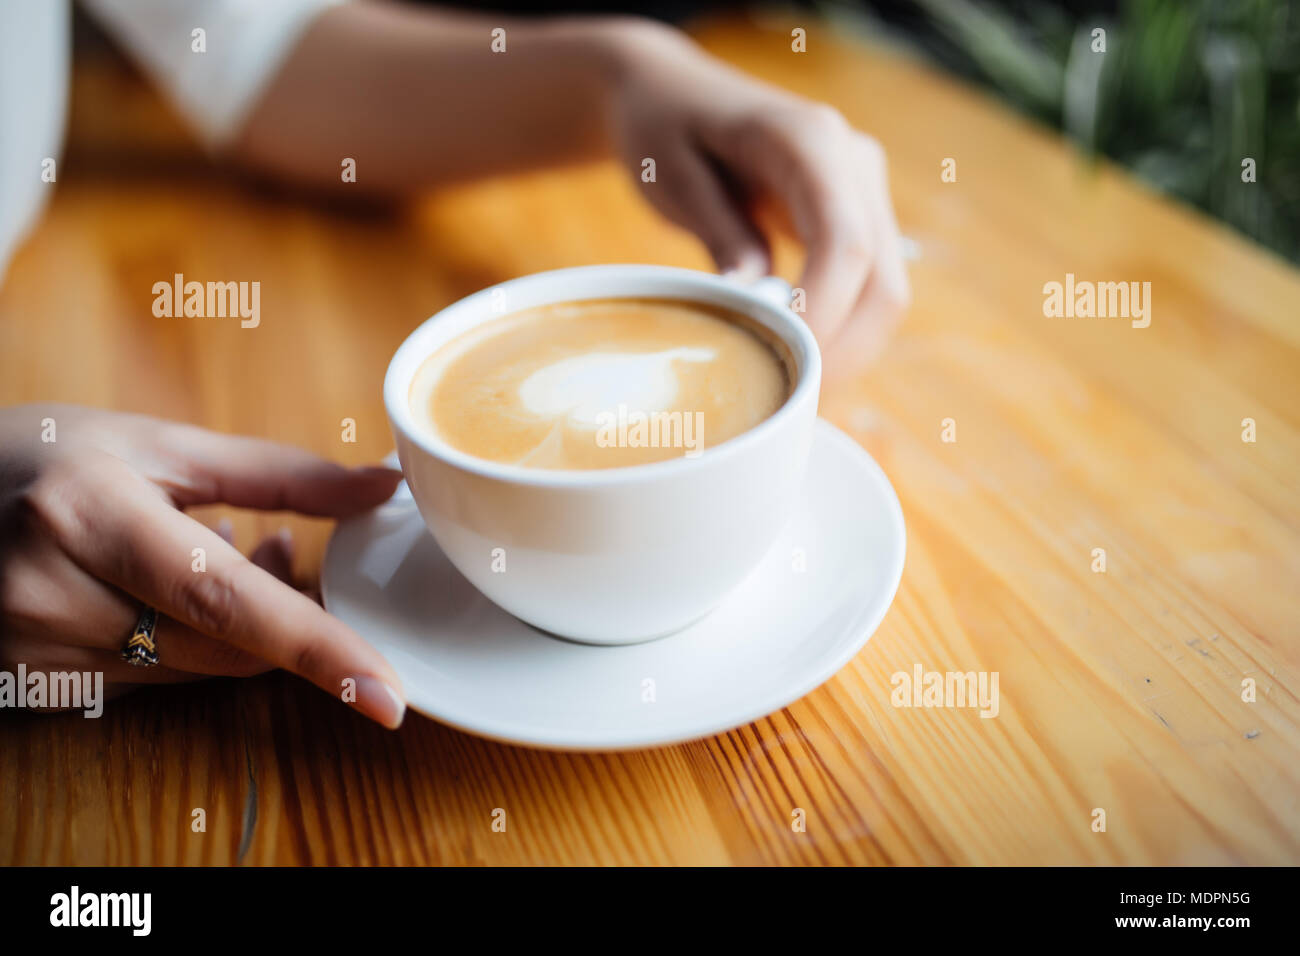 Close up of female hands holding cup of hot drink in cafeteria - Stock Image